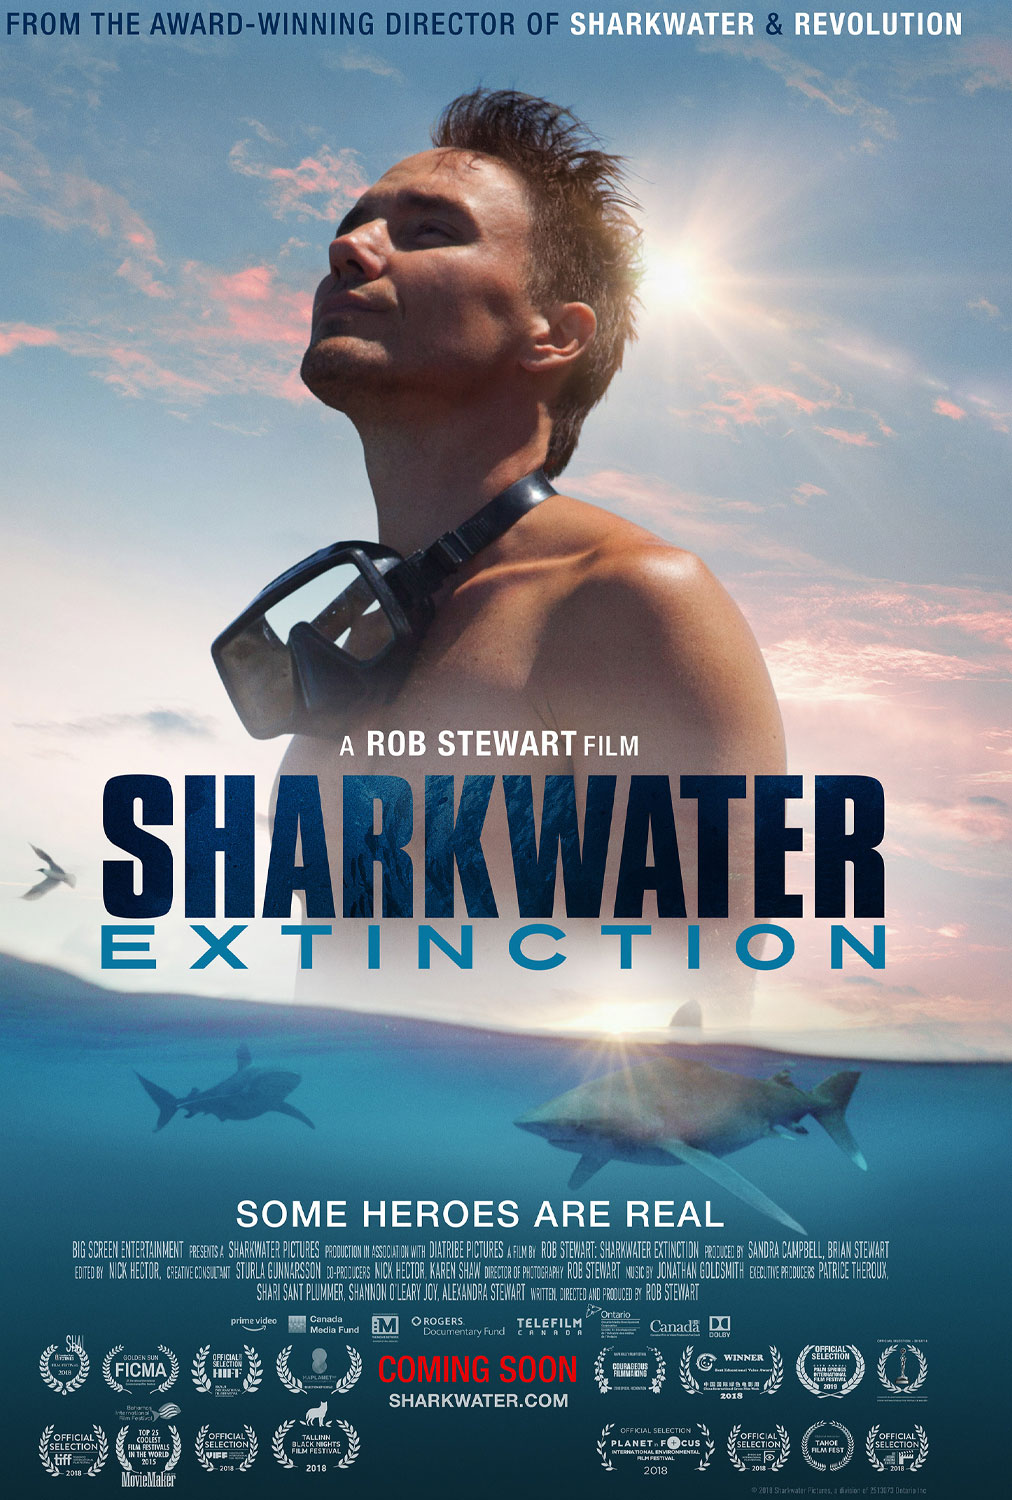 Movie poster for Sharkwater : Extinction directed by Rob Stewart